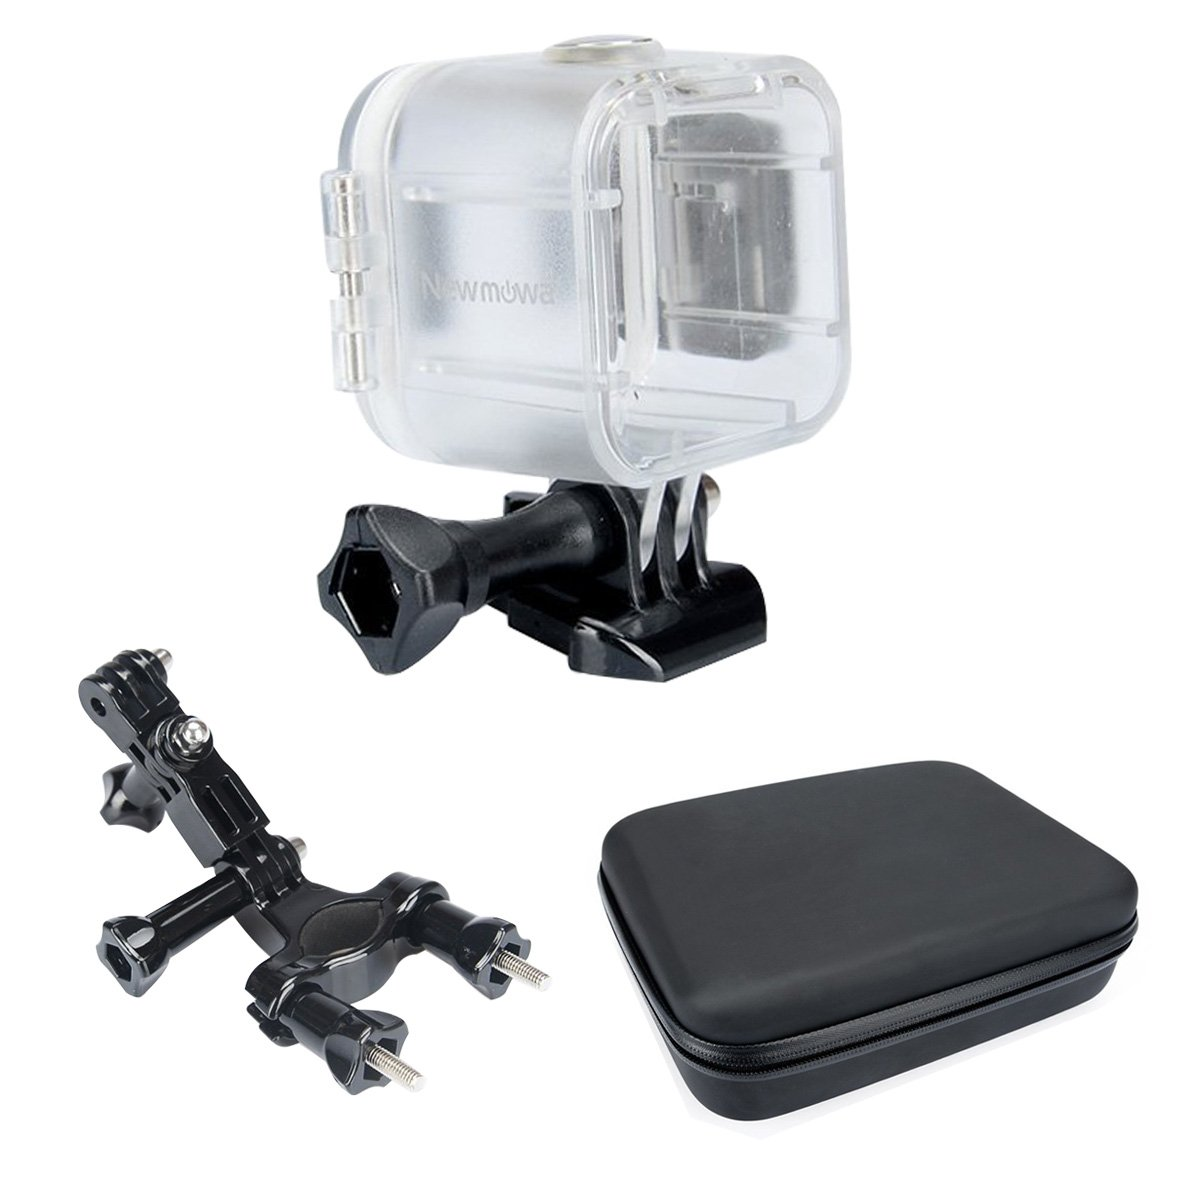 Newmowa Waterproof Case Accessory Kit for Polaroid Cube and Cube+